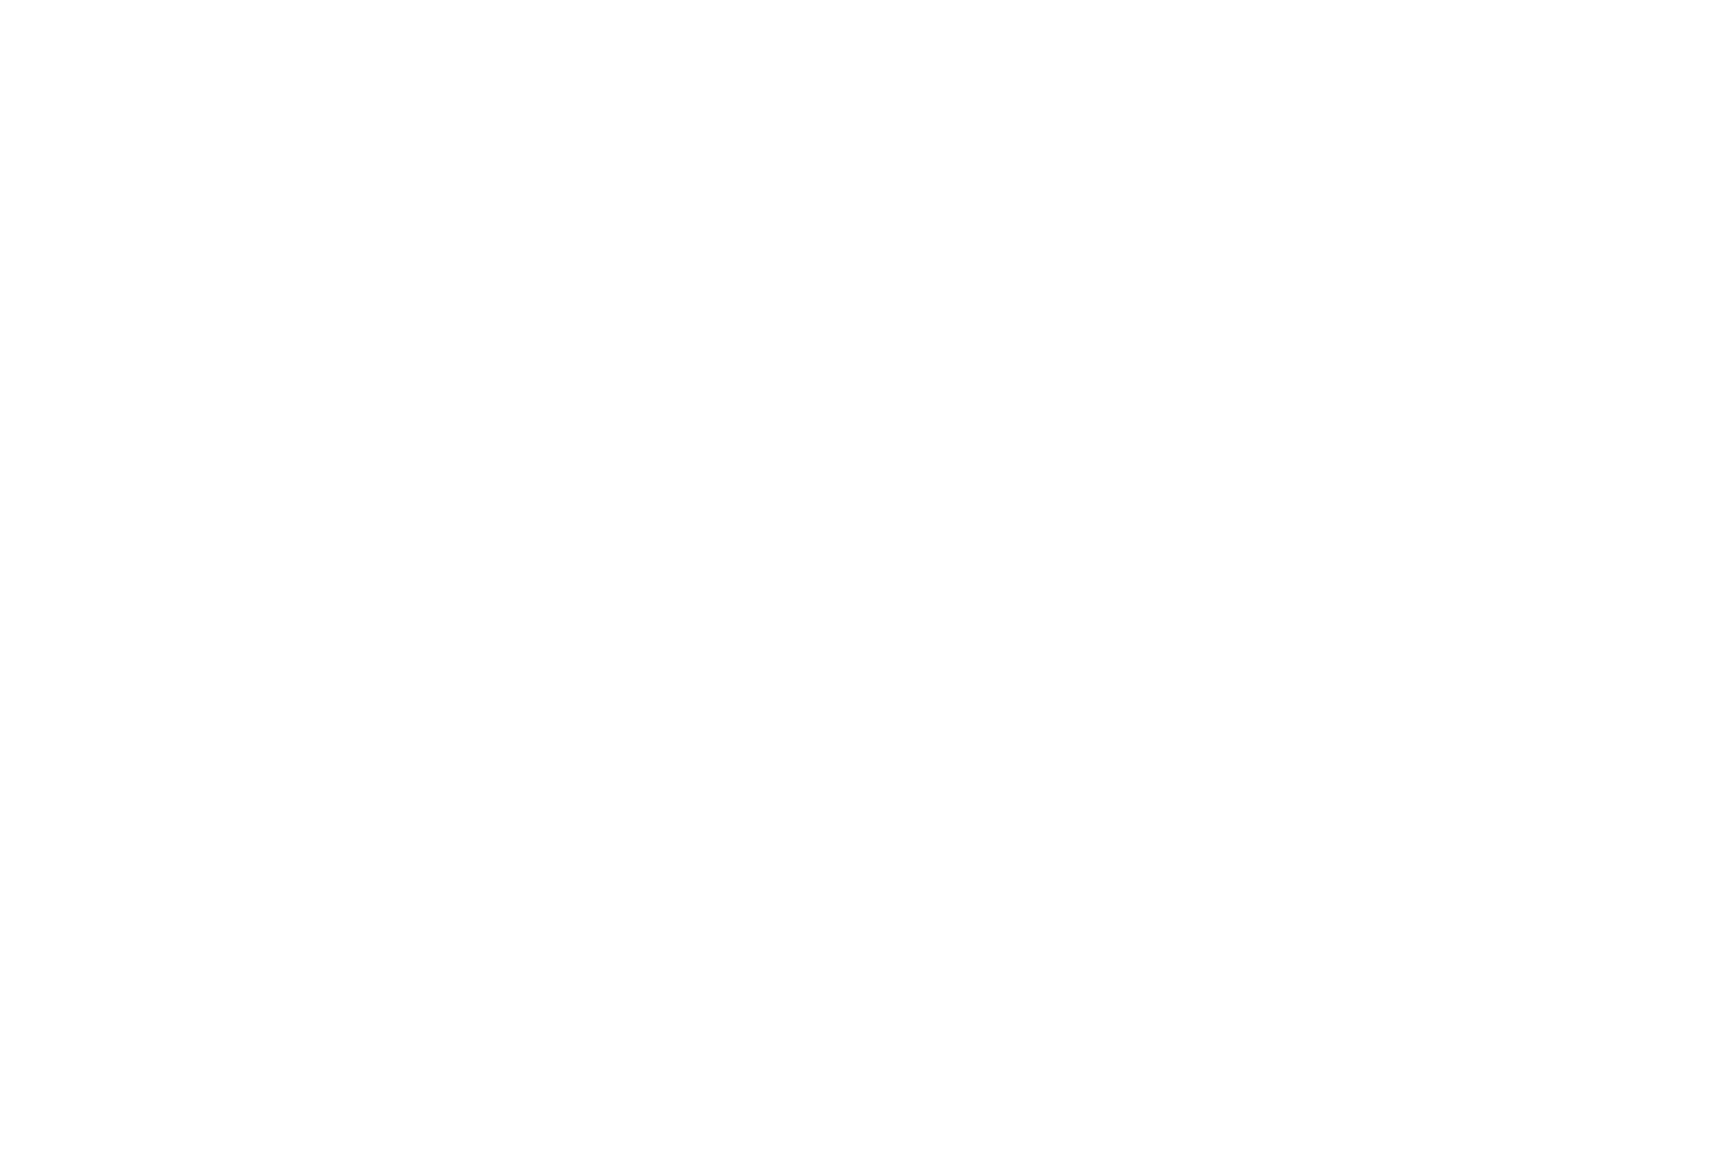 Best of Show 2018 - The West Virginia Mountaineer Short Film Festival - CONDEMNED_wob.png